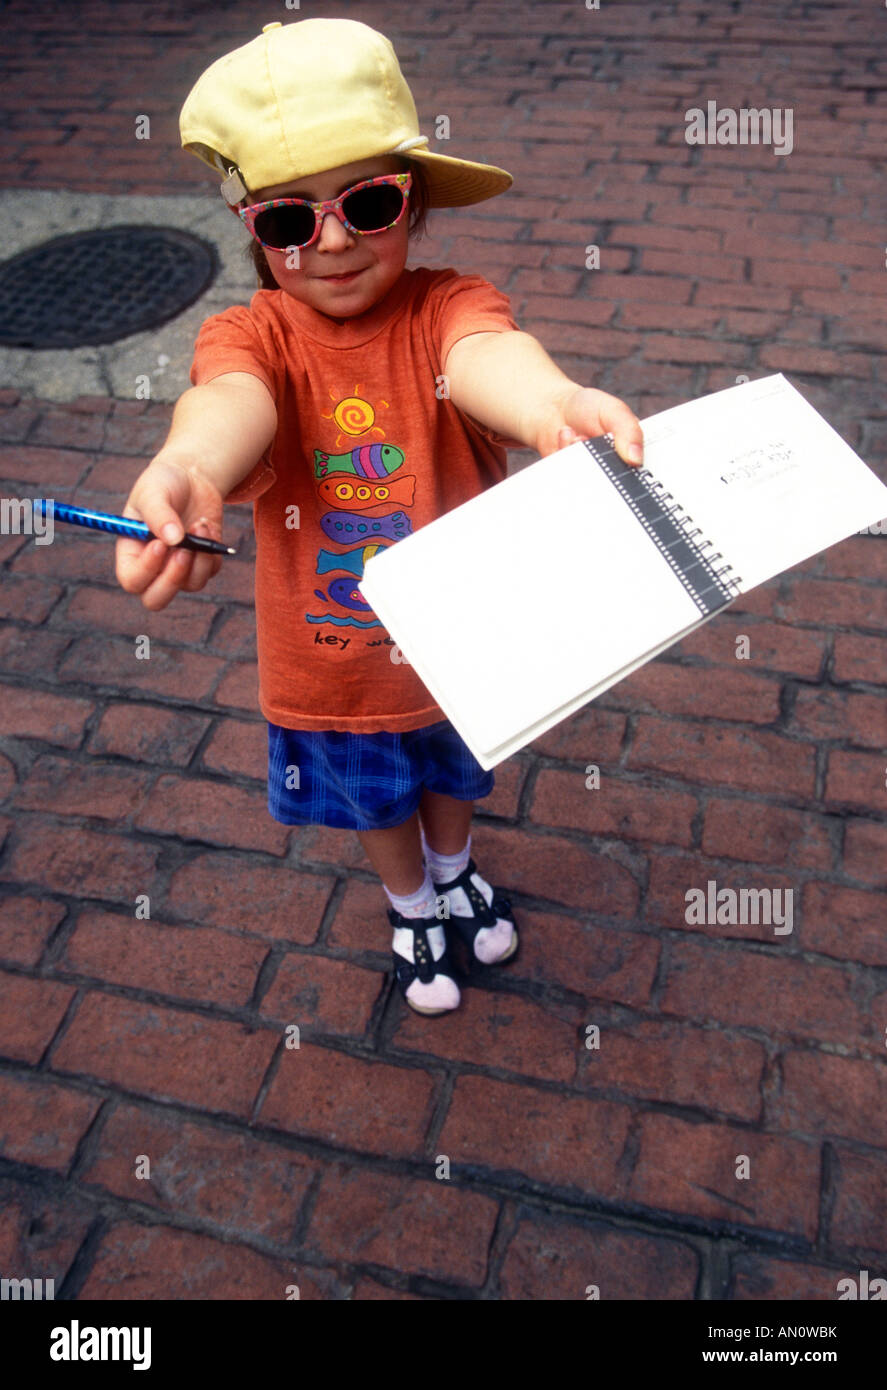 Young Fan aking for an autograph - Stock Image